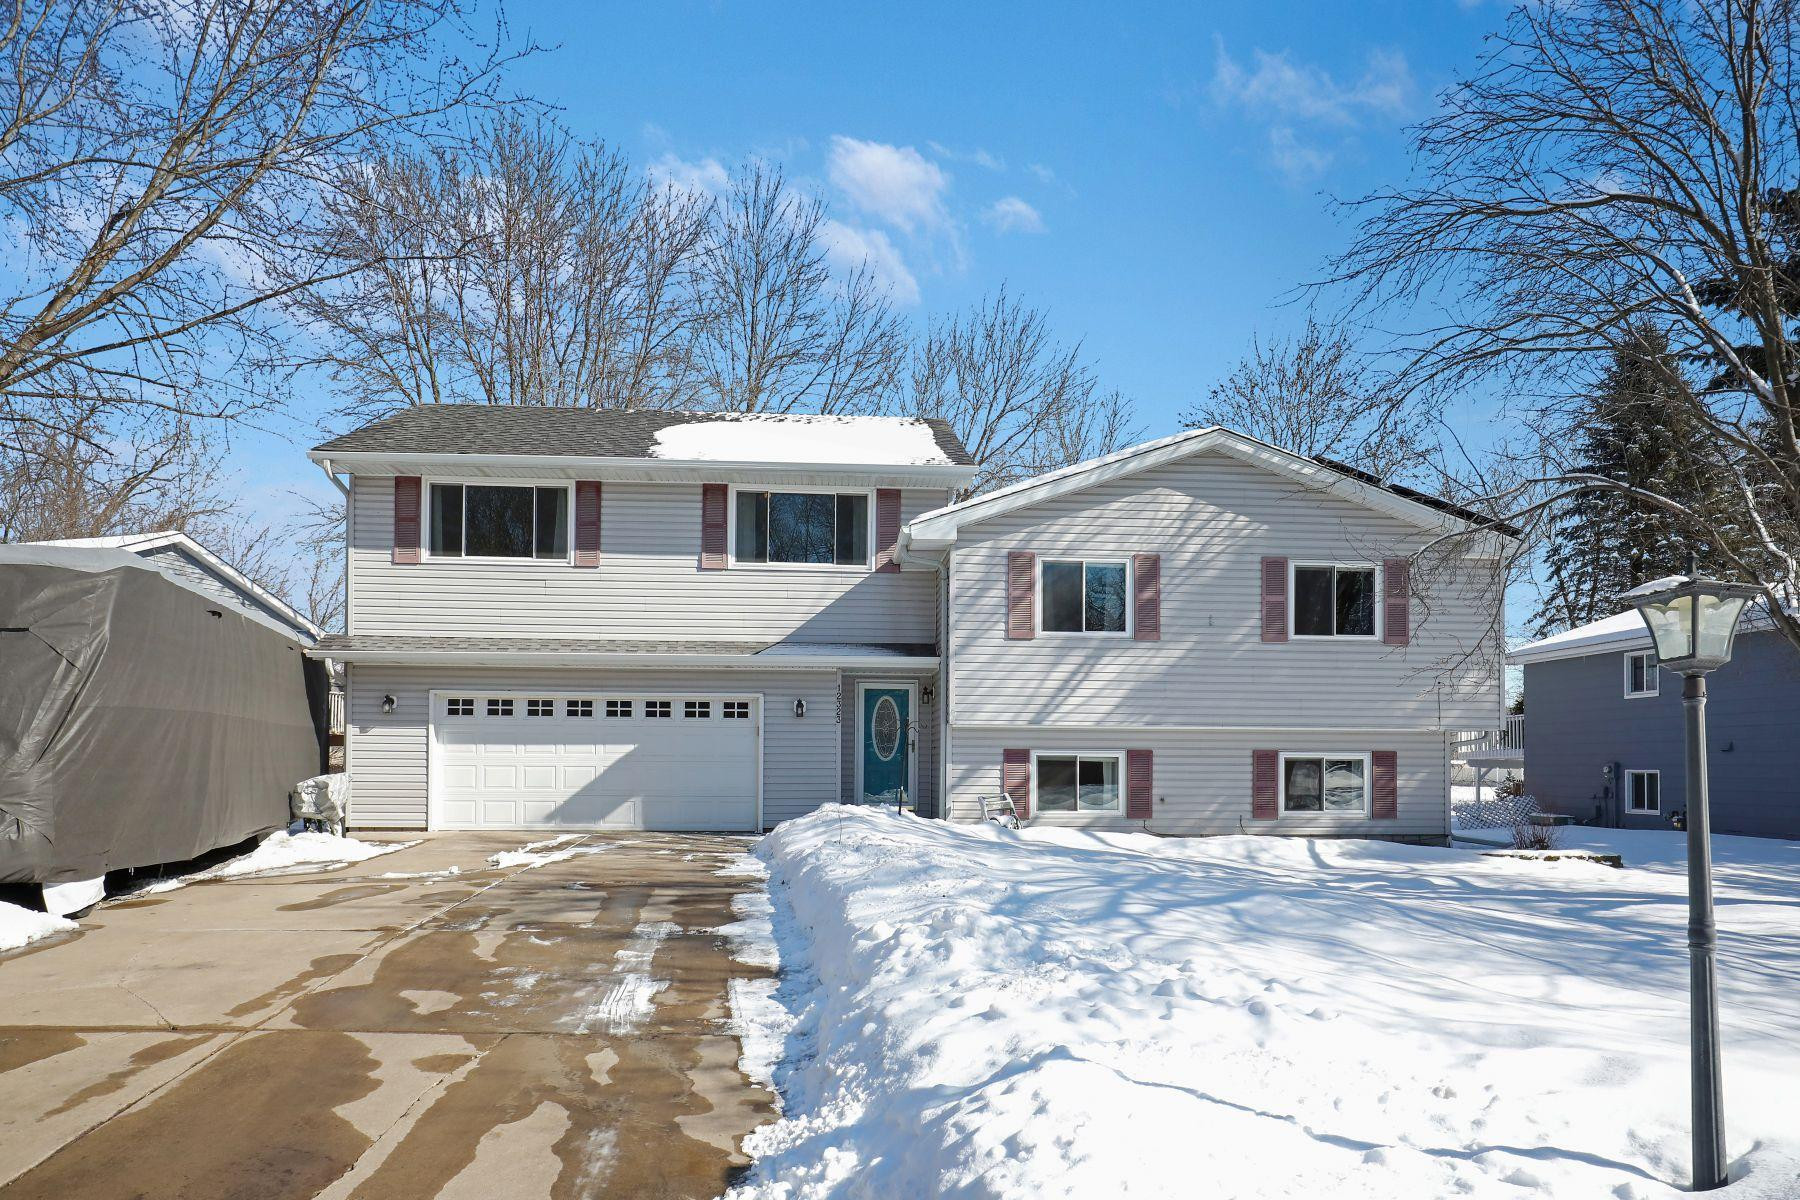 Welcome to 12323 Evergreen Street! On a cul-de-sac street. Has a new roof with new solar panels. Low-maintenance exterior. Concrete driveway with RV/boat parking. New windows in 2017. Huge fenced back yard. Wow.